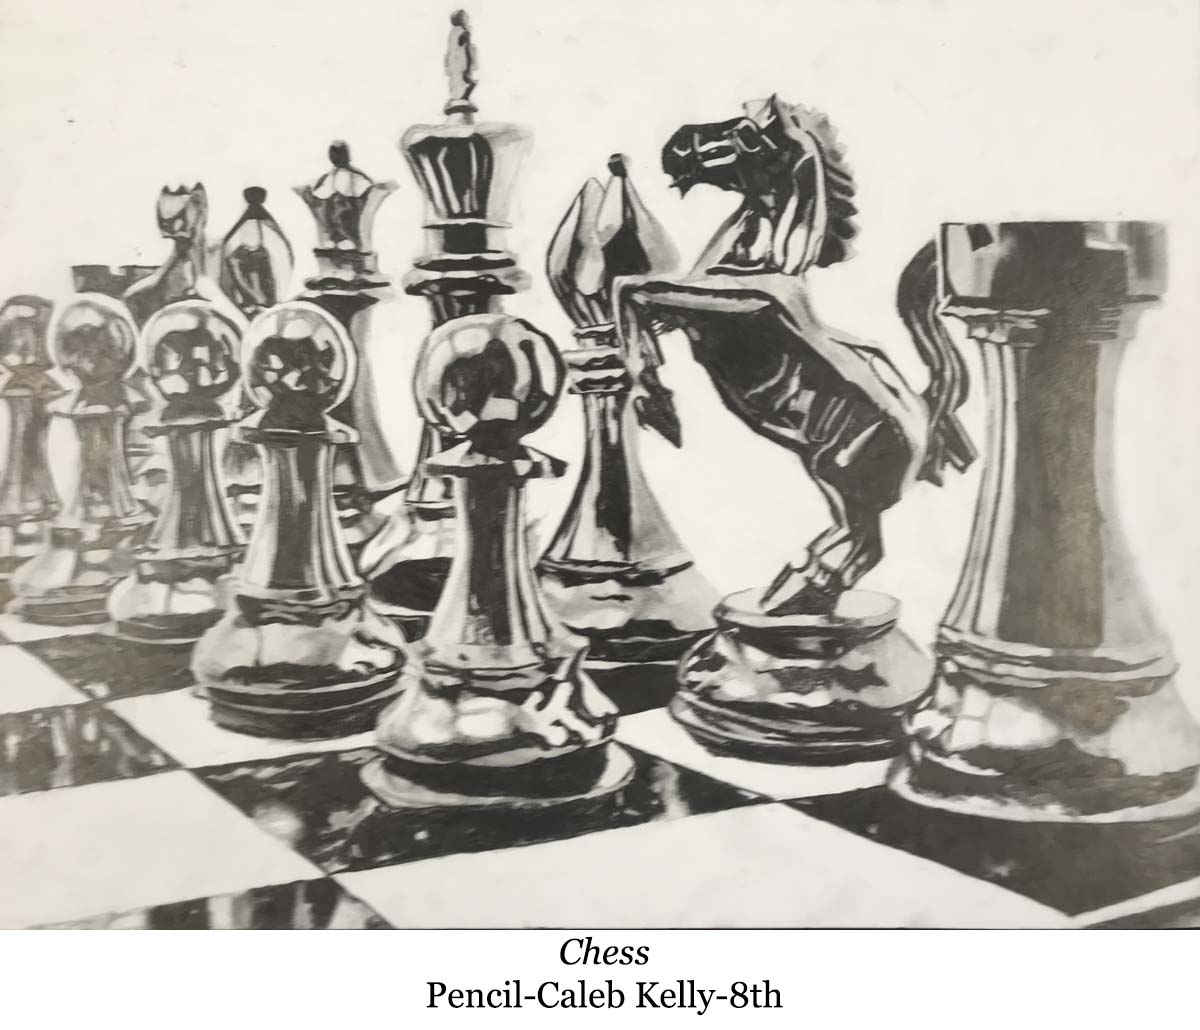 1588002954-chess-pencil-caleb_kelly-8th